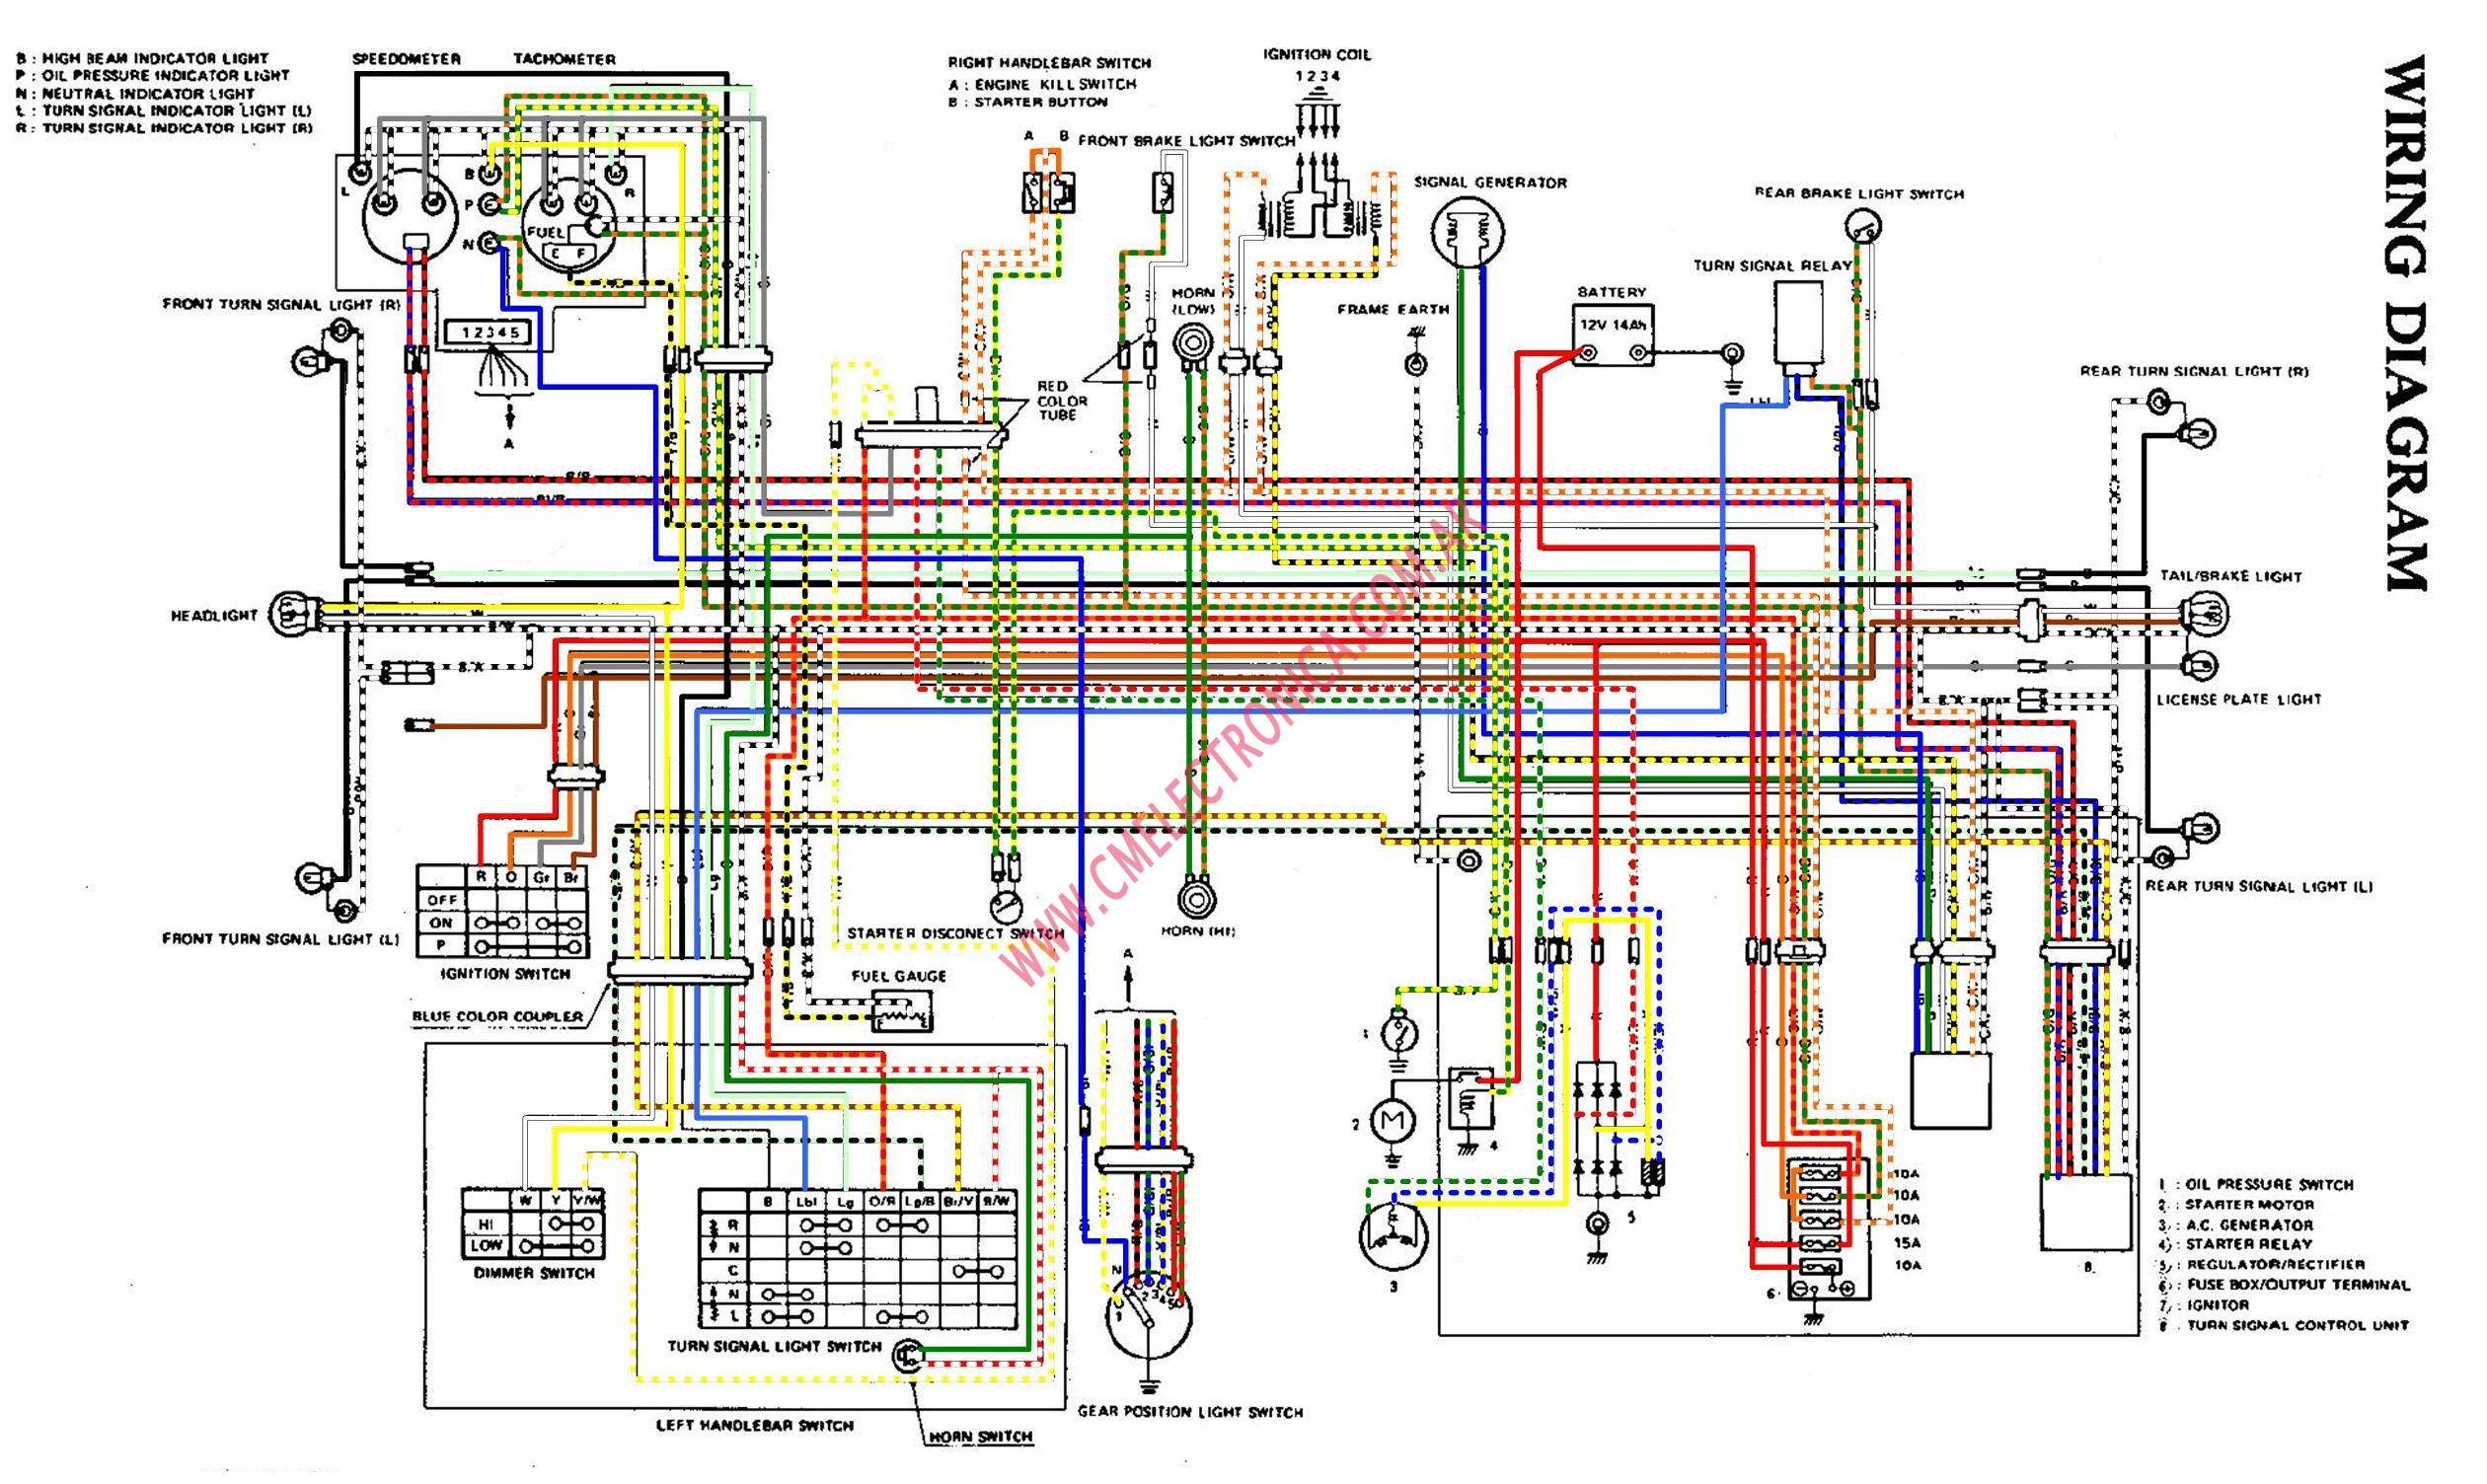 Wiring Diagram As Well As Caja Msd Msd Ignition Wiring Diagram Msd